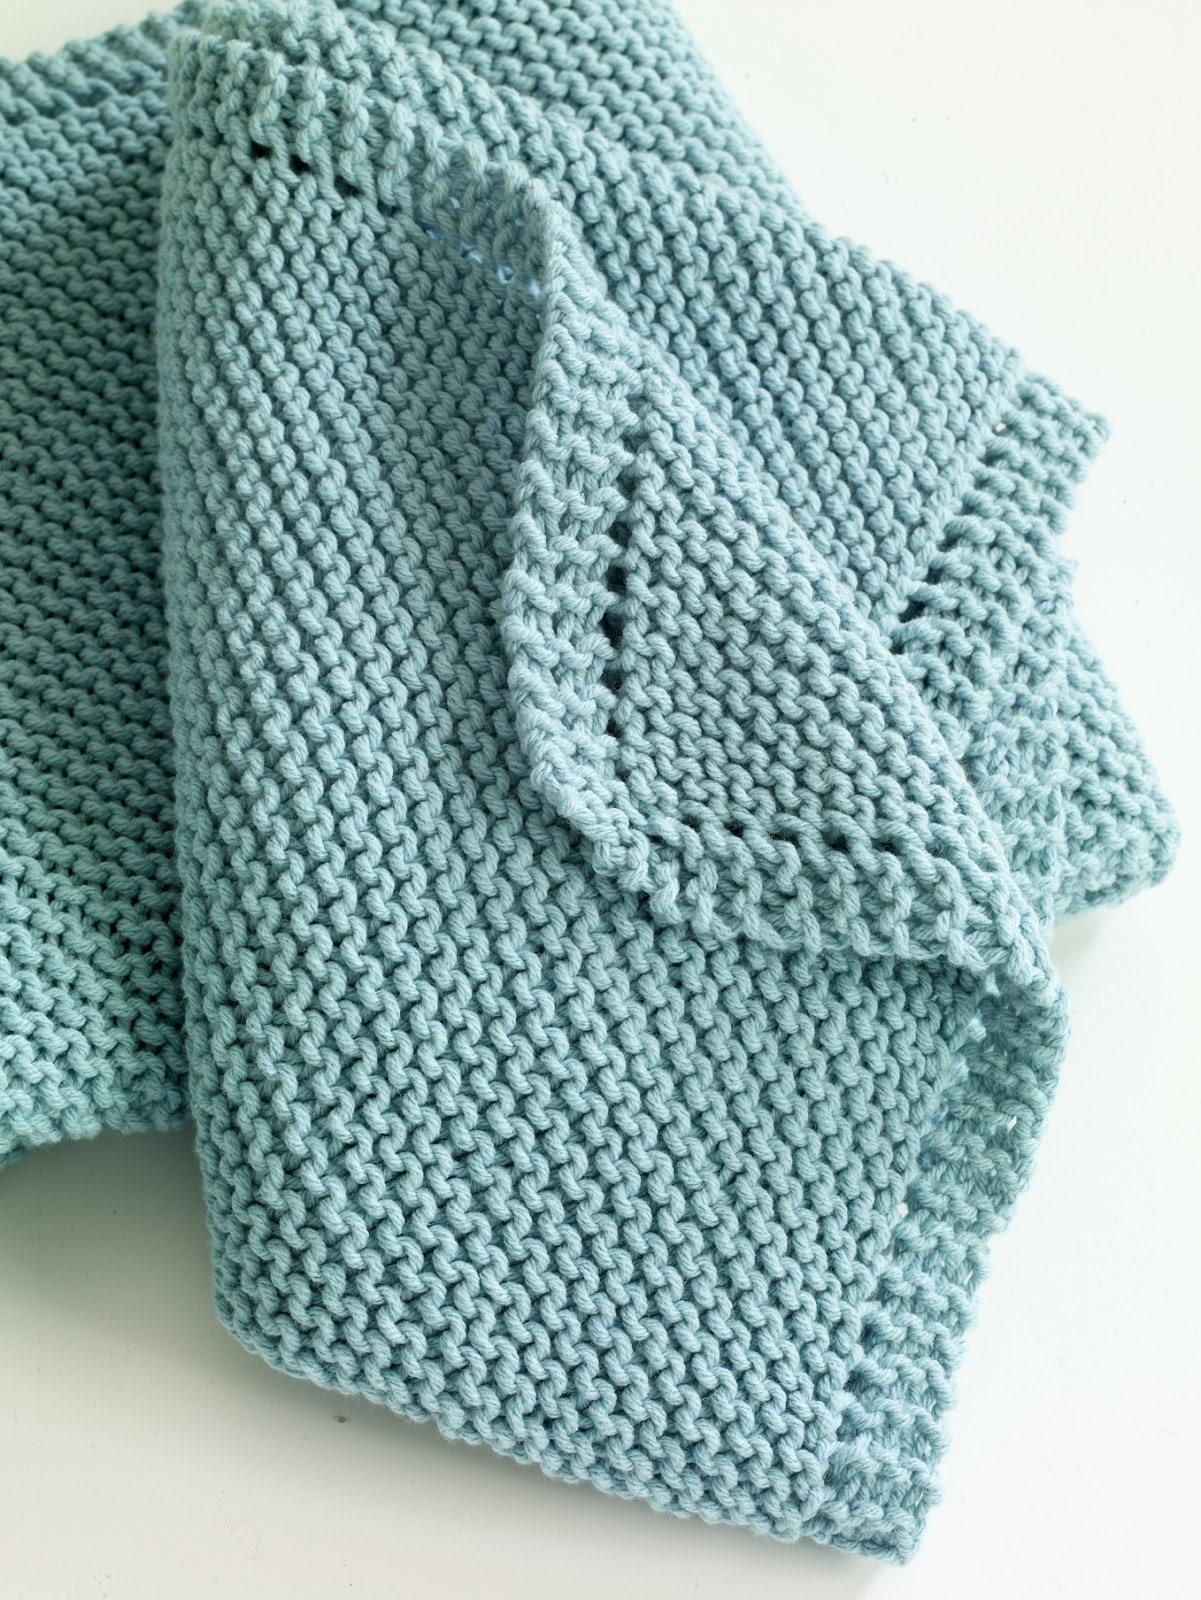 Knitting Pattern For An Easy Baby Blanket : Serenity Knits